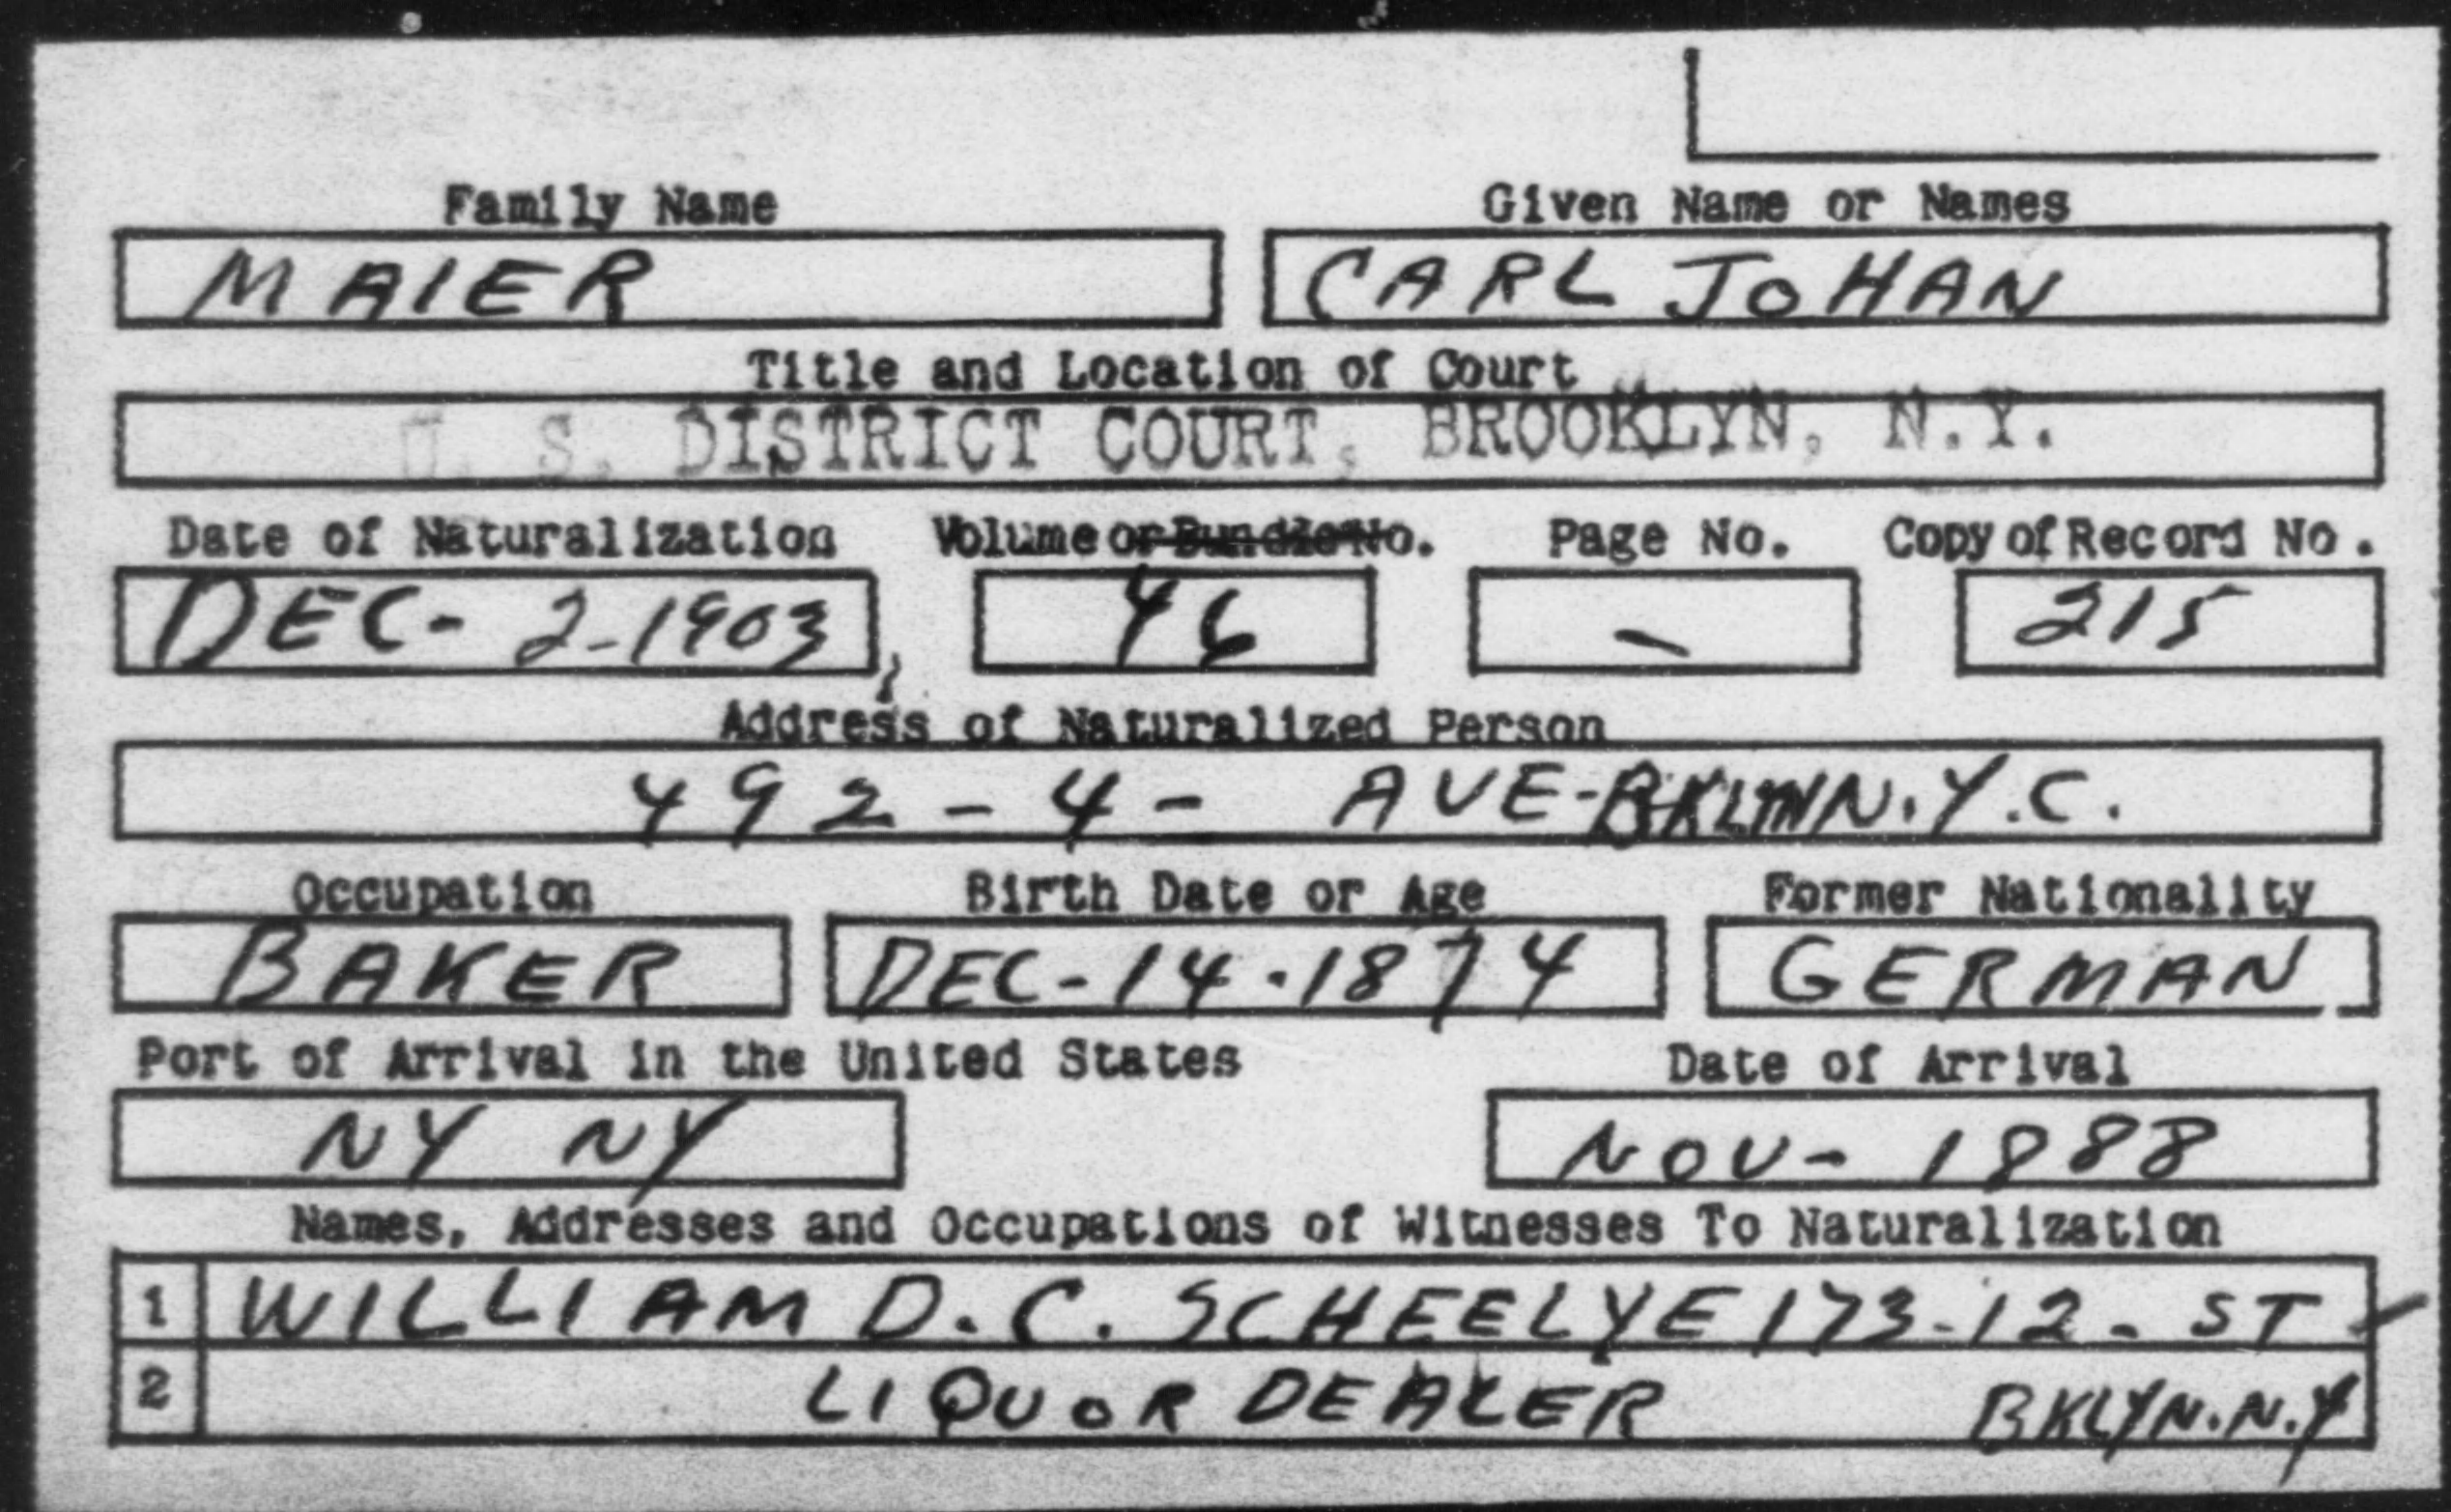 Public Member Photos & Scanned Documents - Ancestry